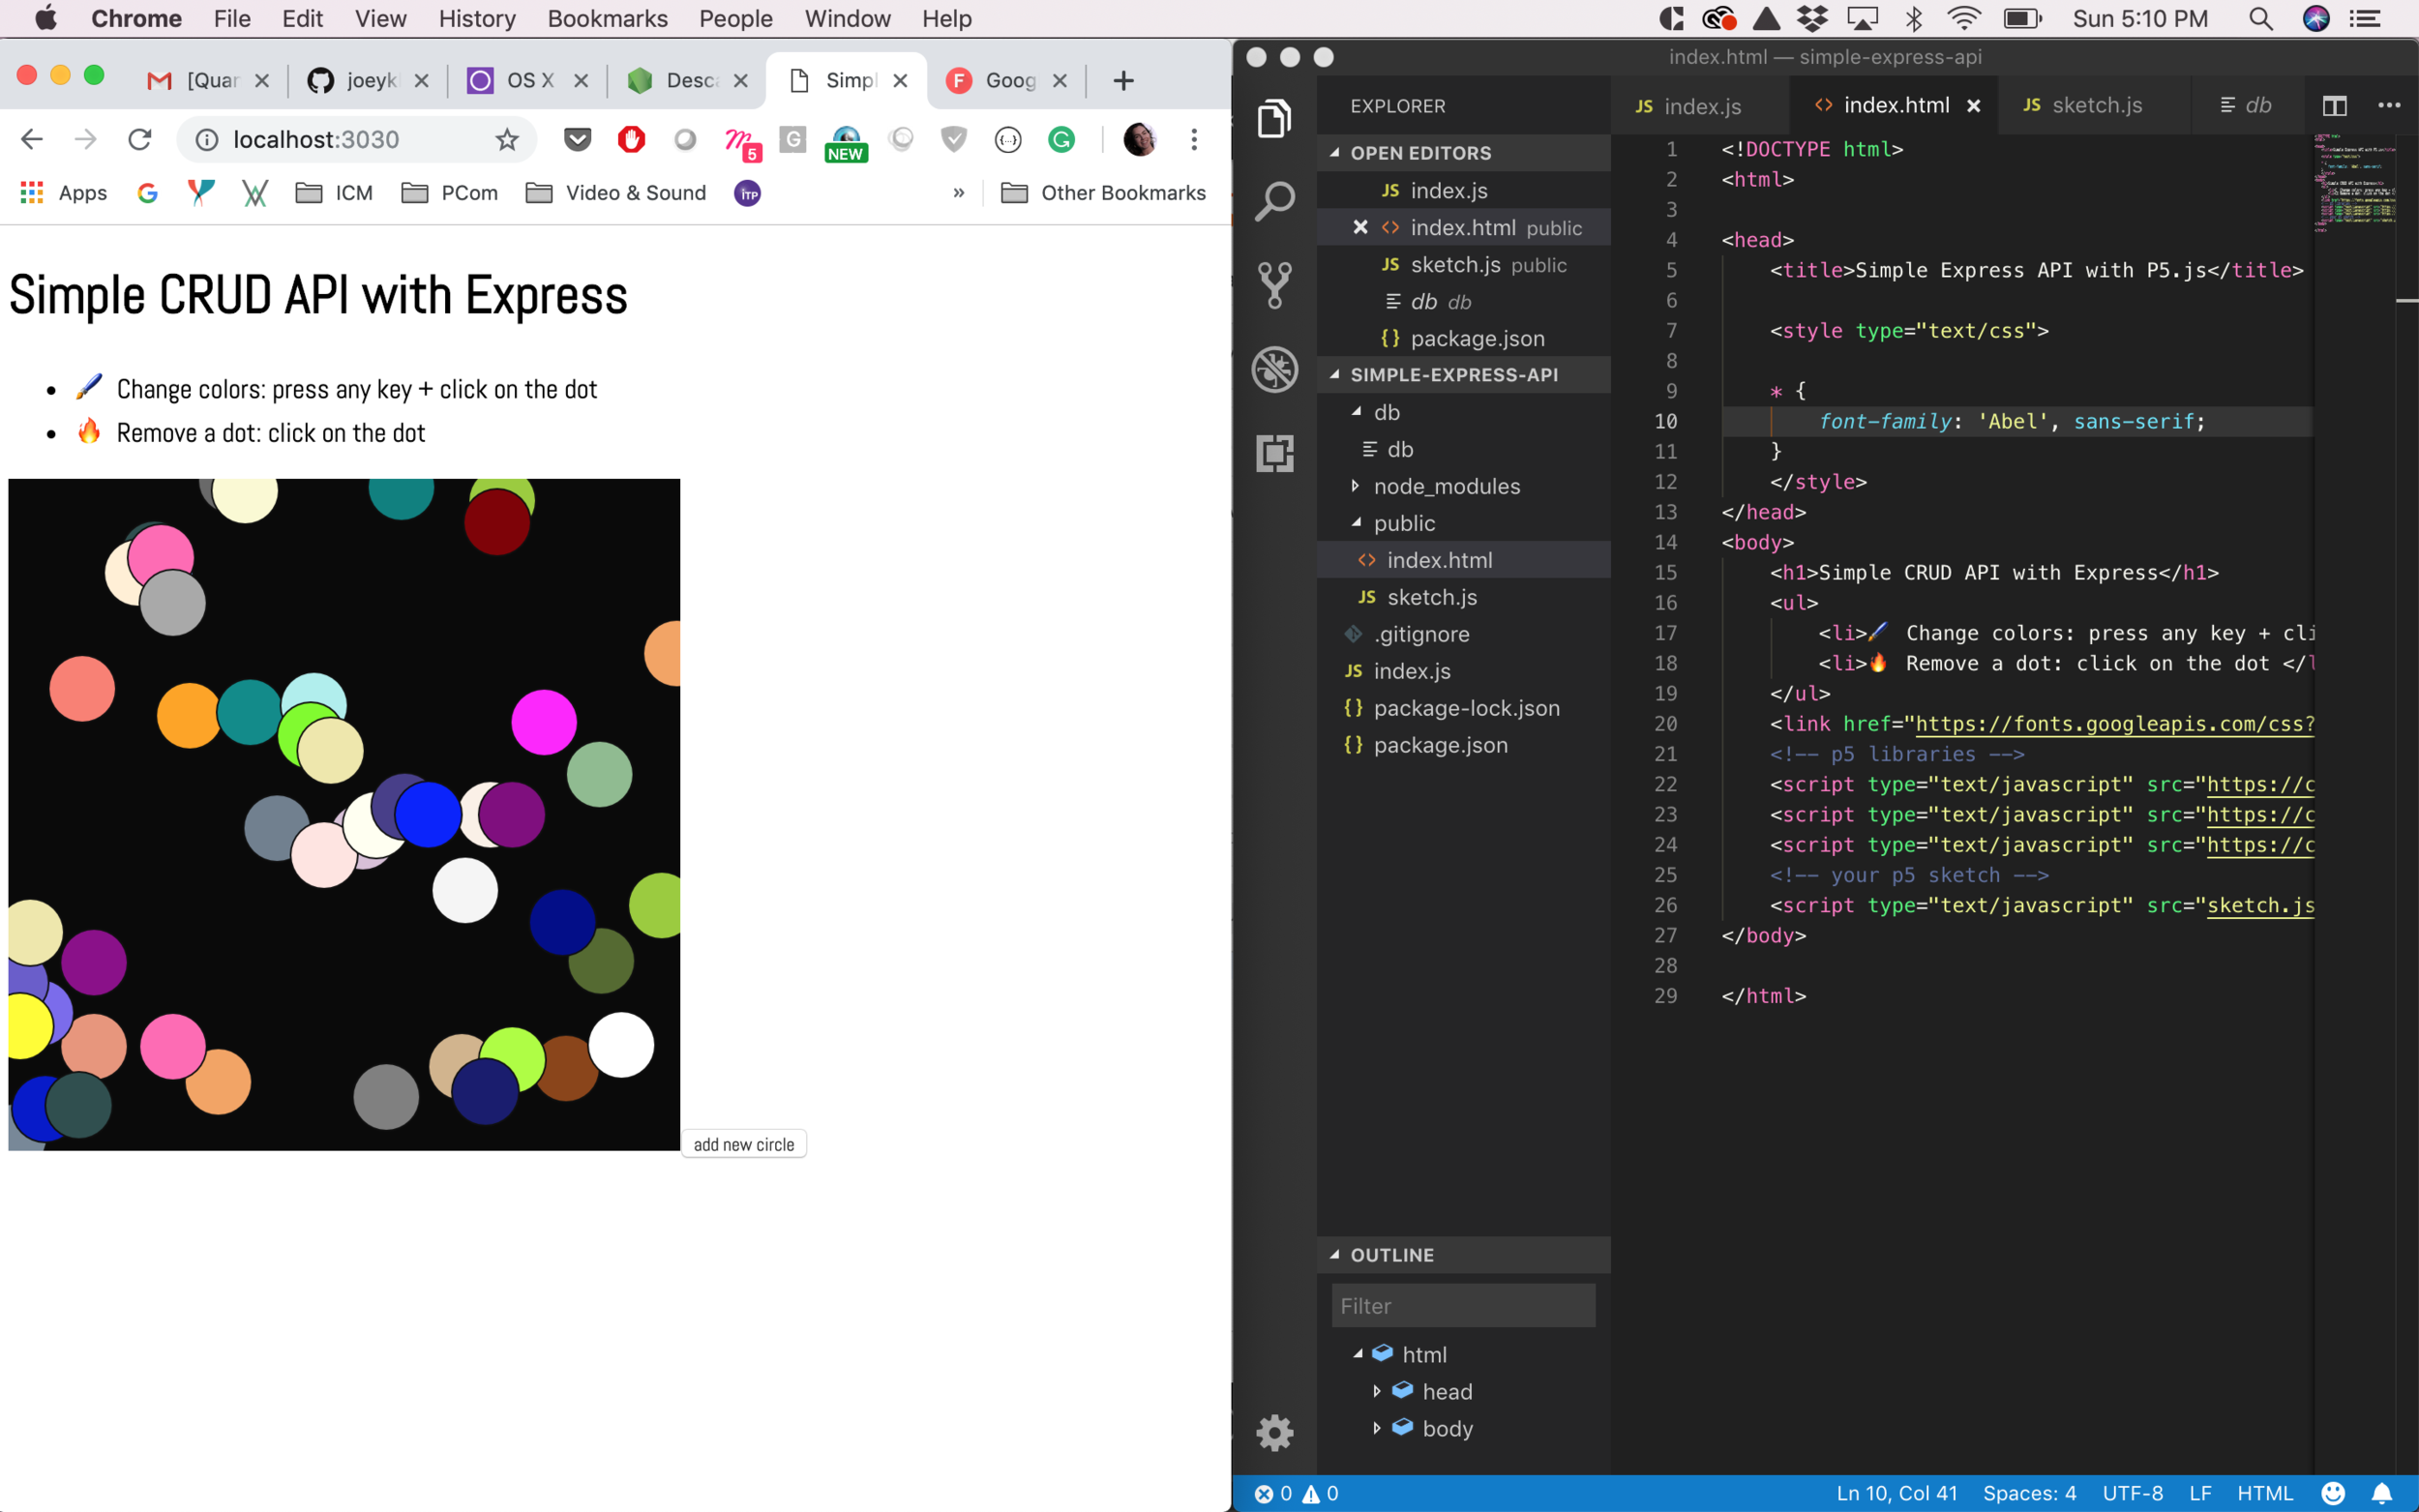 Running the p5.js sketch